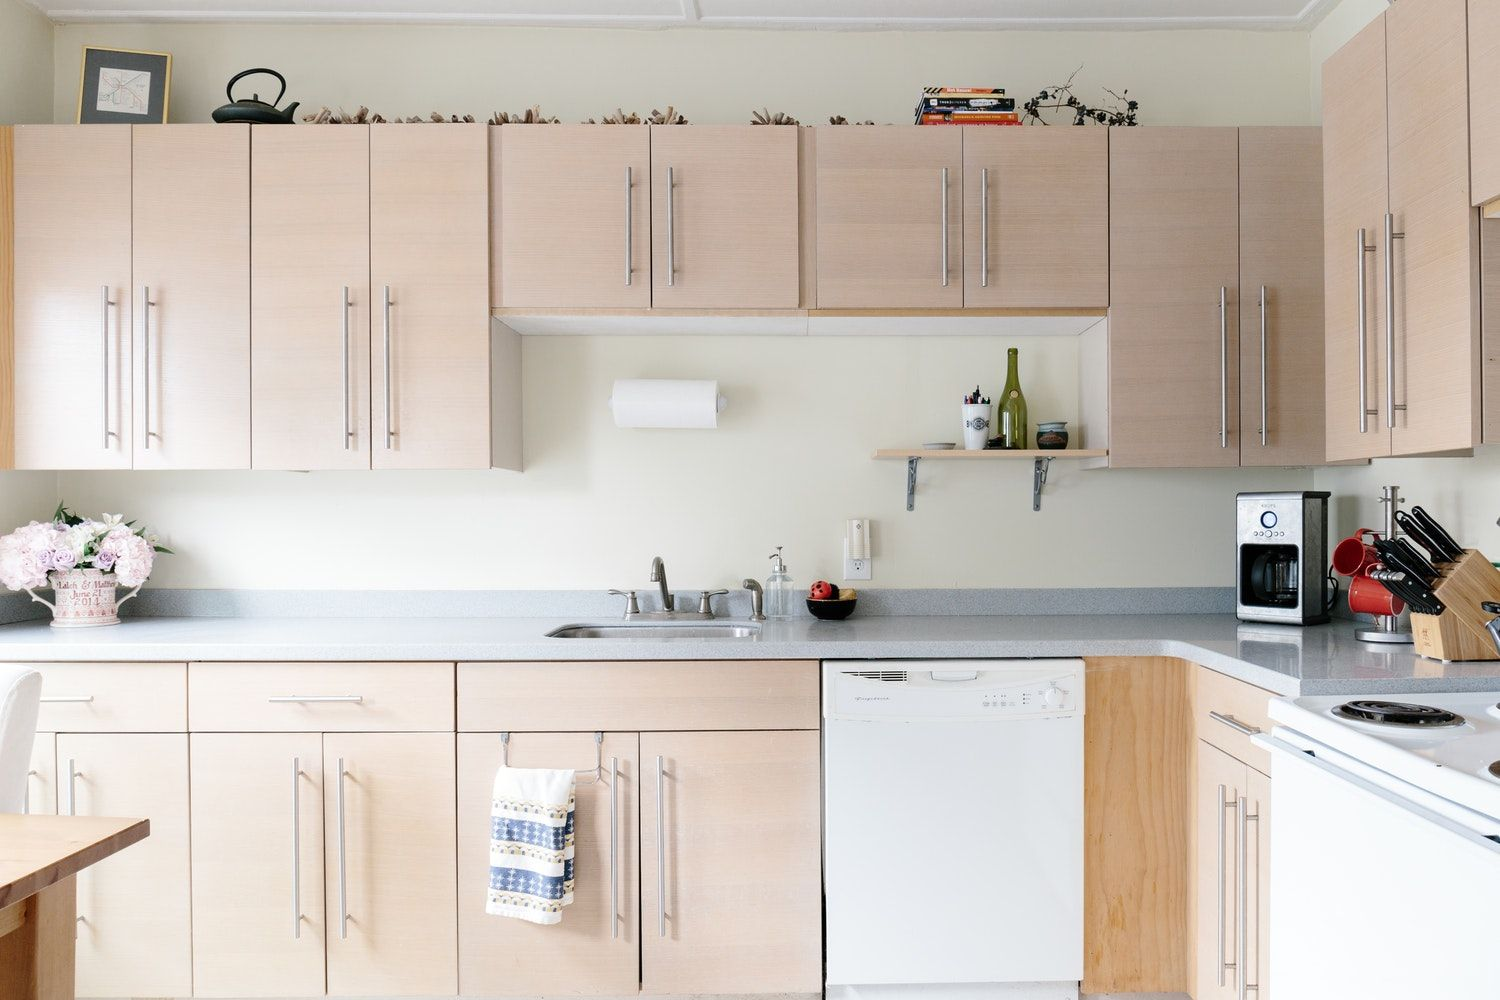 Best Way To Clean Kitchen Cabinets The Best Ways To Get Sticky Cooking Grease Off Cupboards